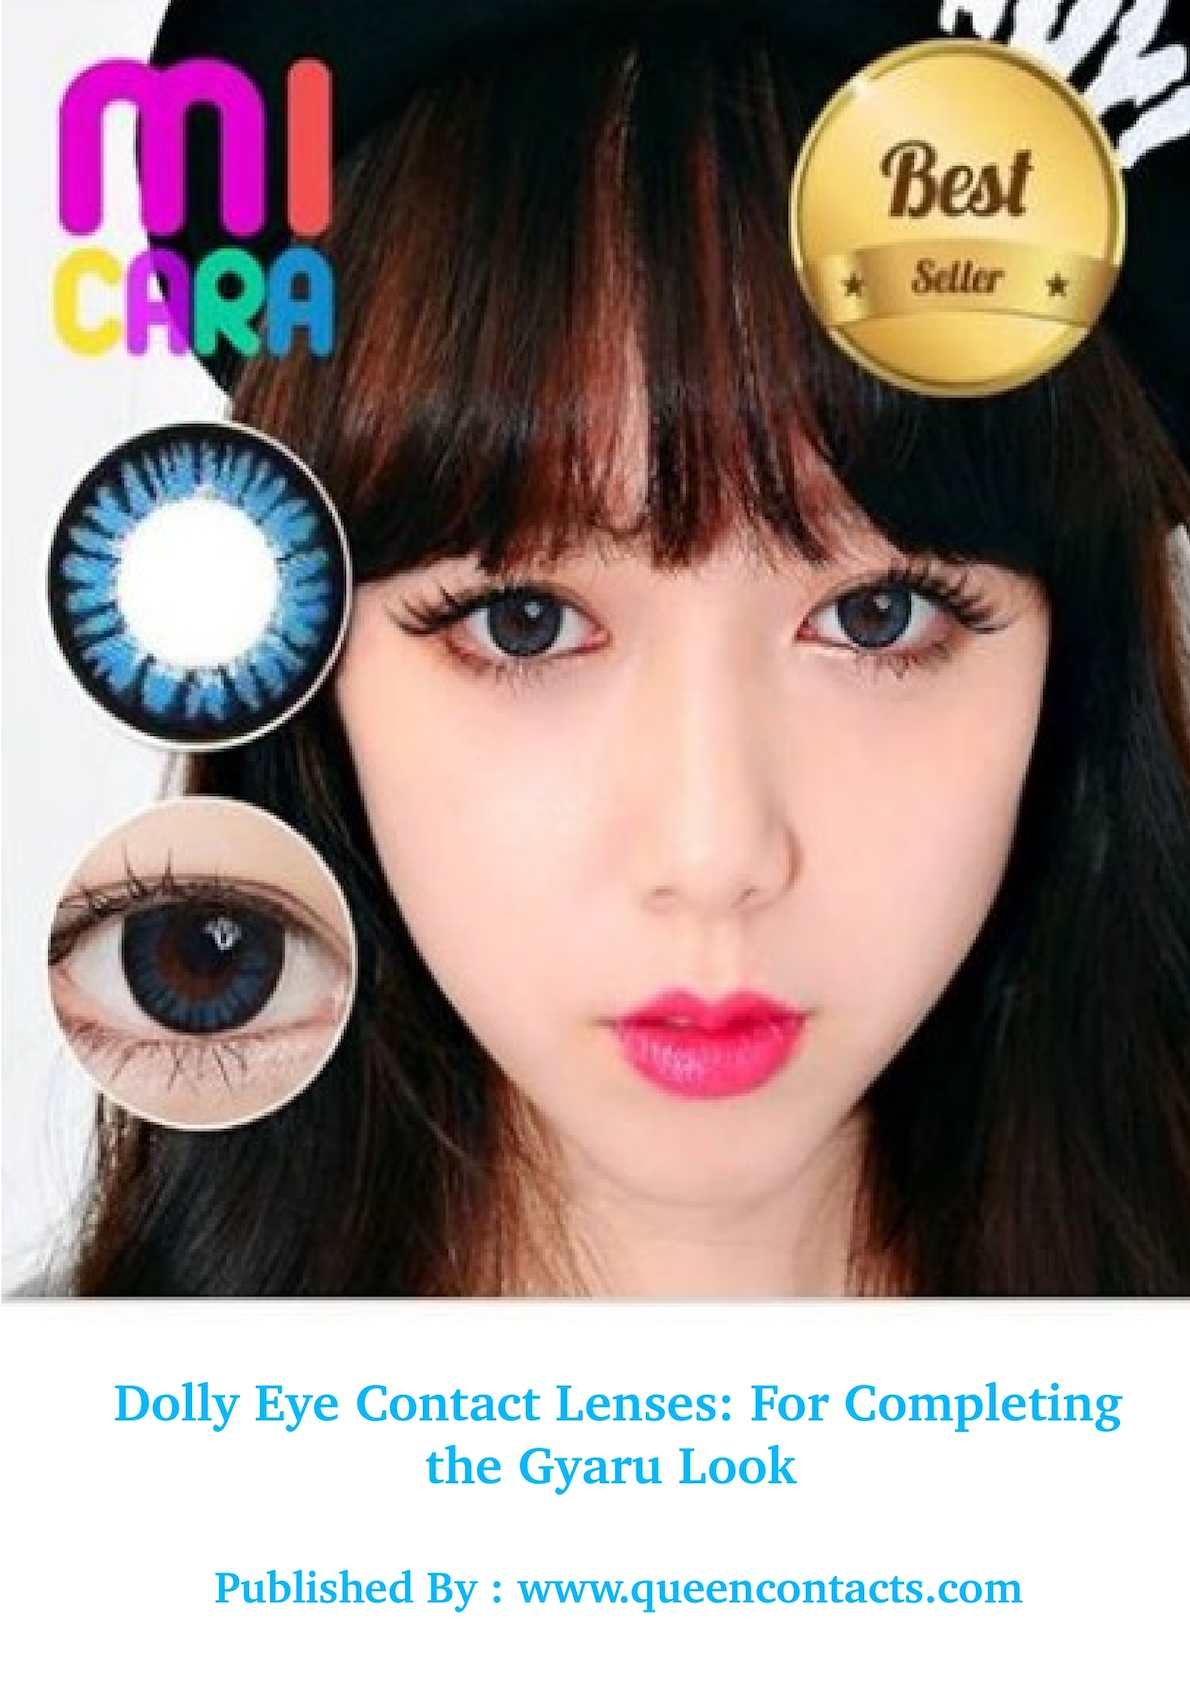 Calamo Dolly Eye Contact Lenses For Completing The Gyaru Look